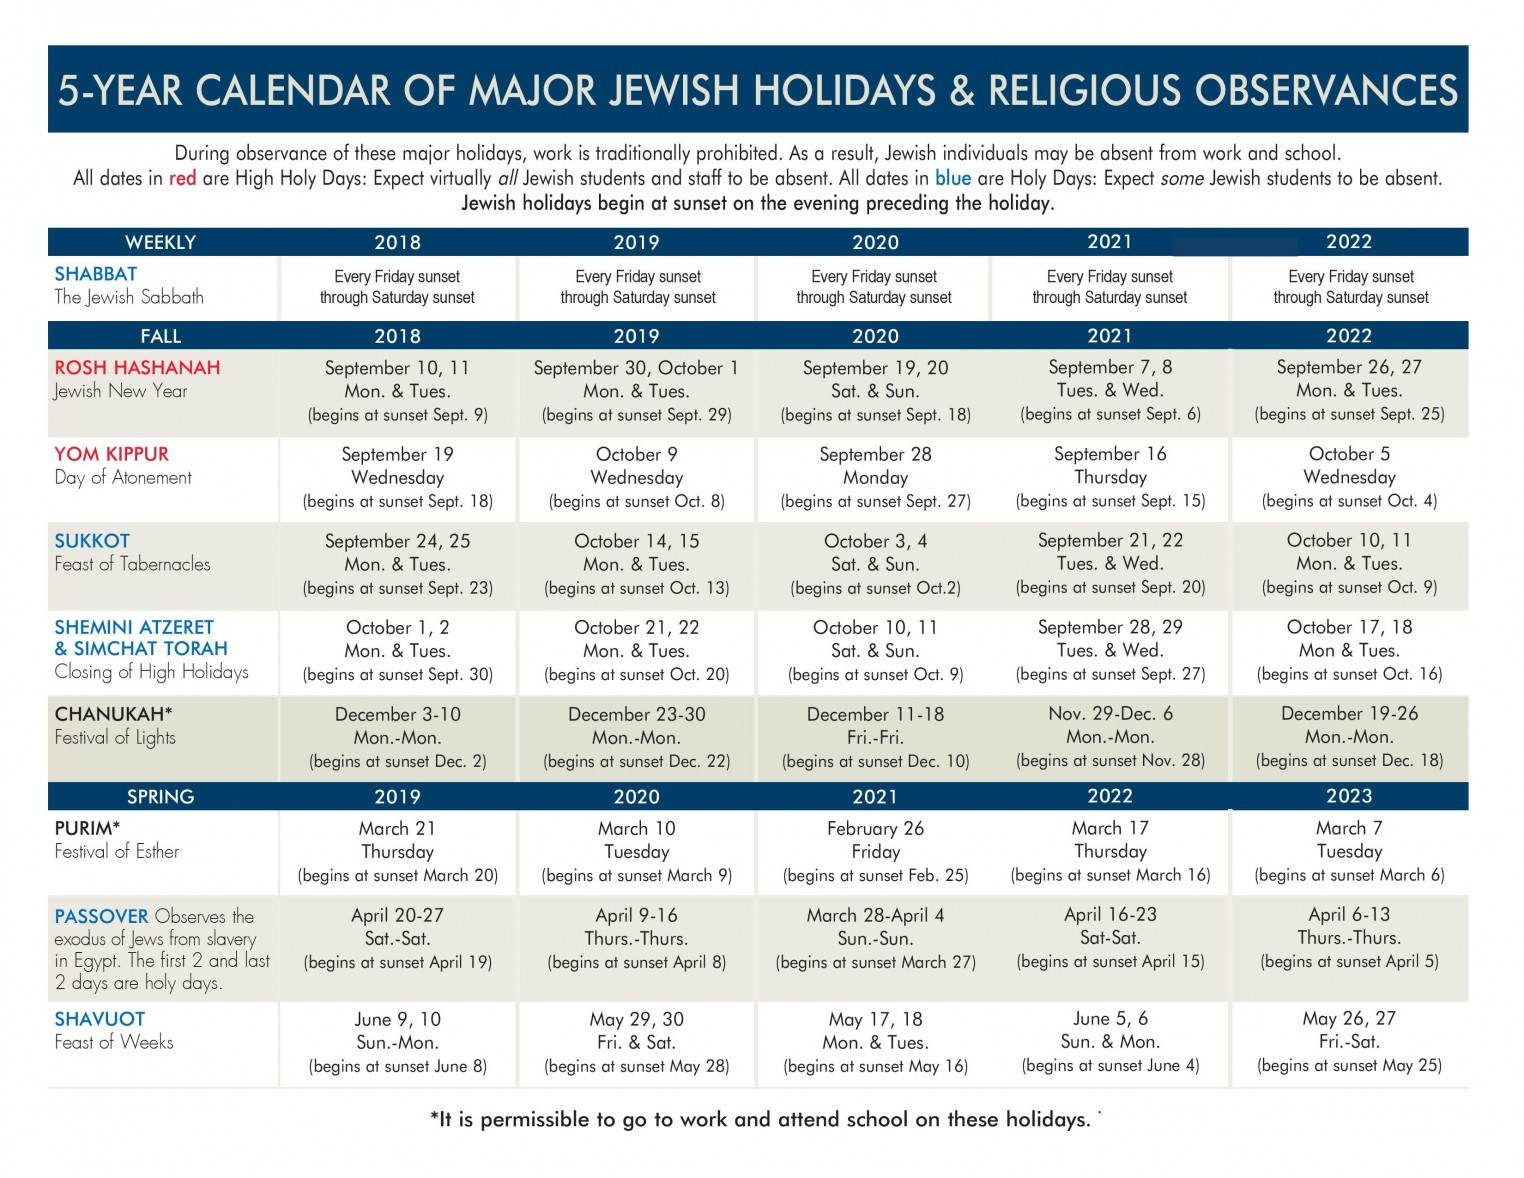 5 Year Jewish Holiday Calendar Jewish Federation Of Pinellas And